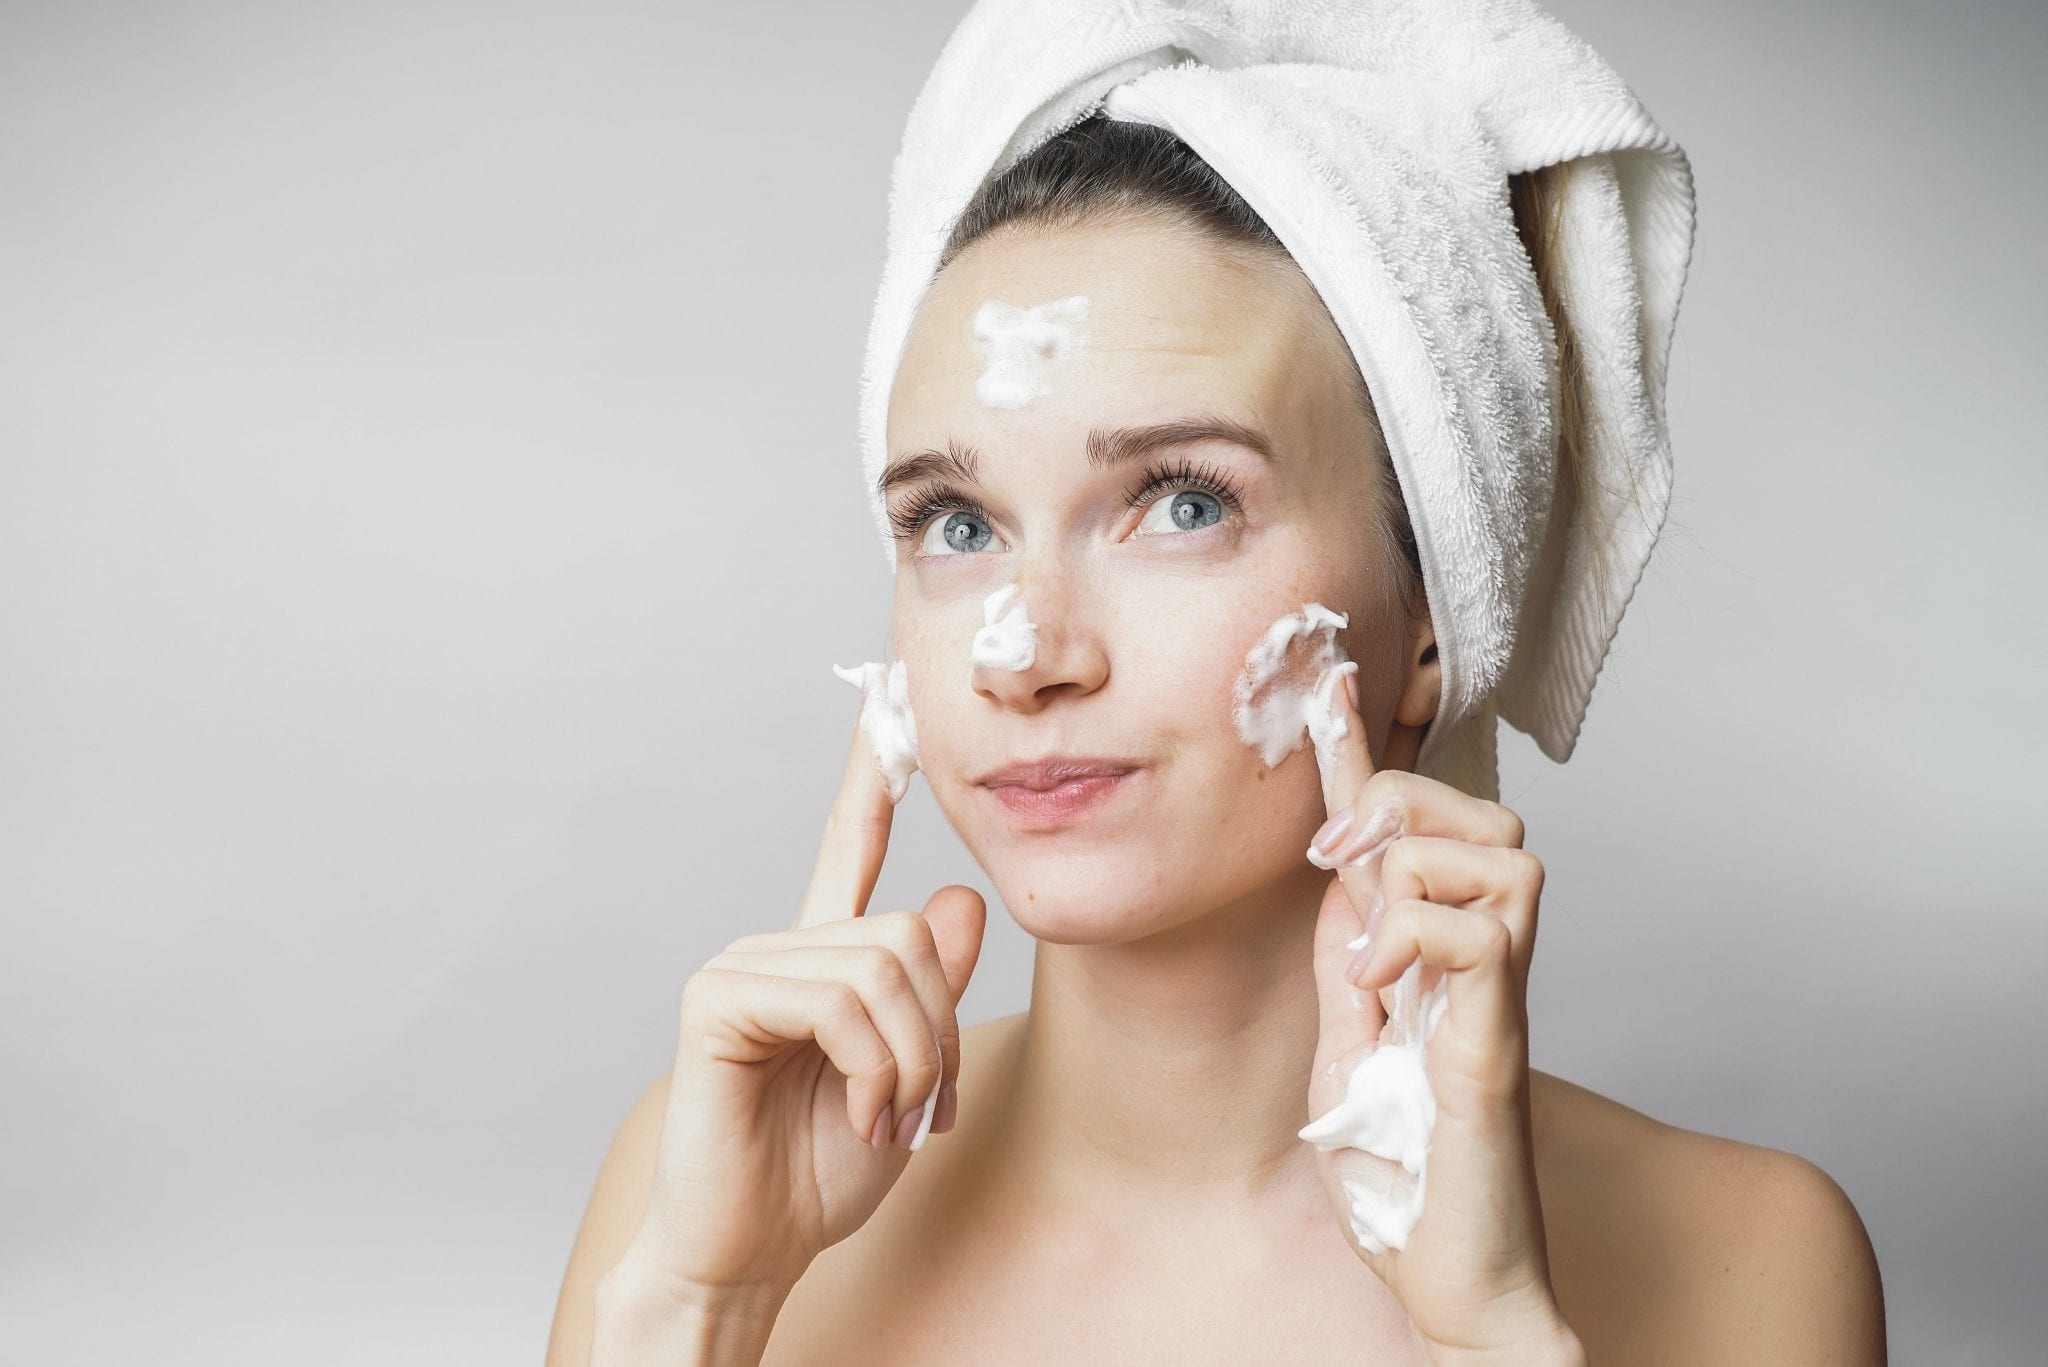 girl with cleanser on her face and hair wrapped in a towel